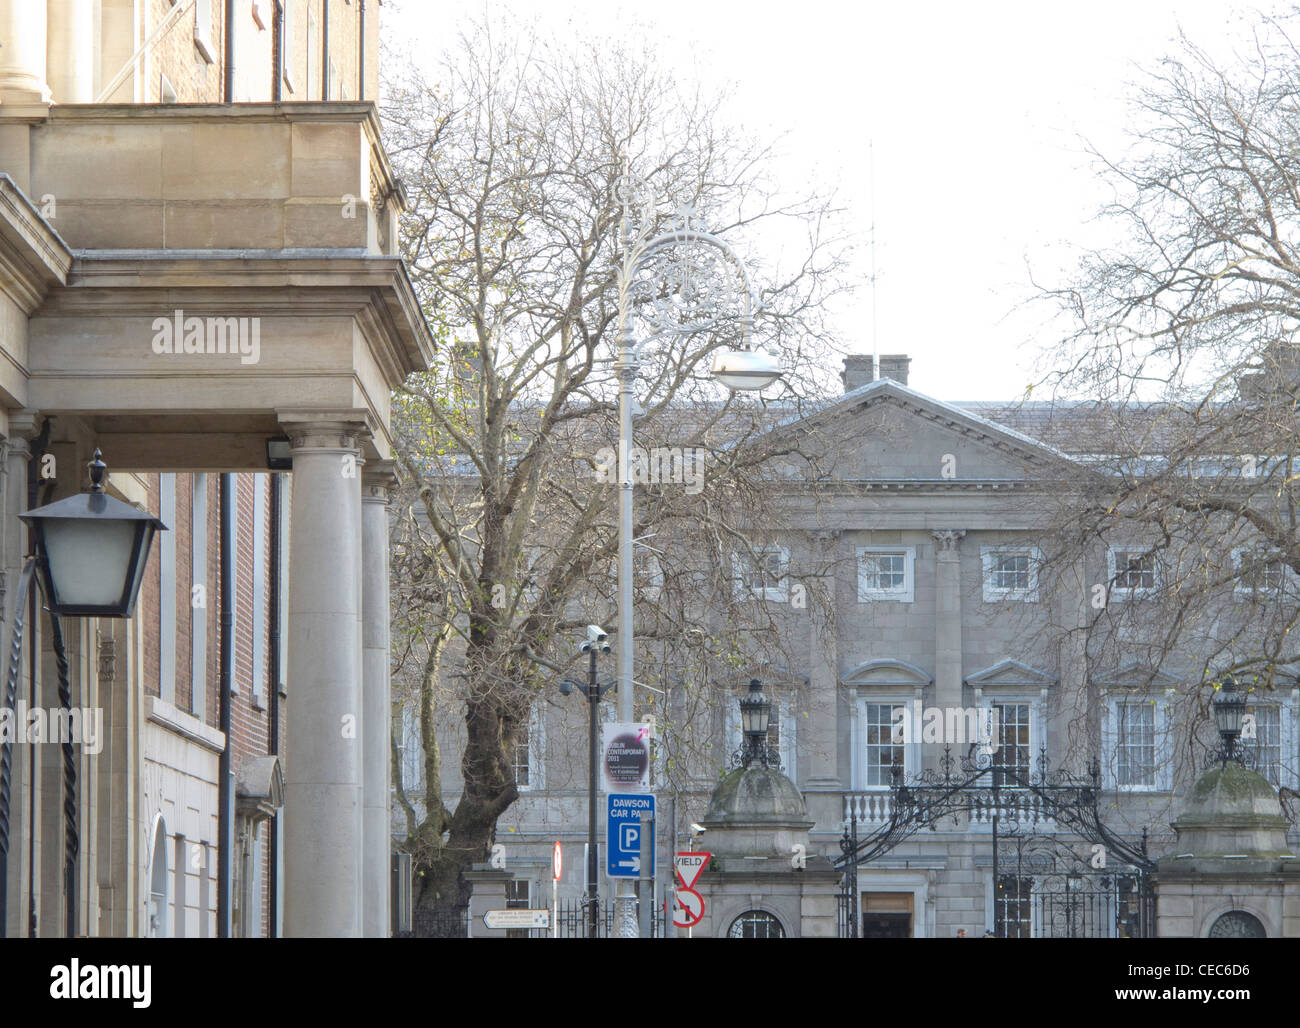 zoom shot of leinster house parliament building from kildare st in dublin ireland Stock Photo